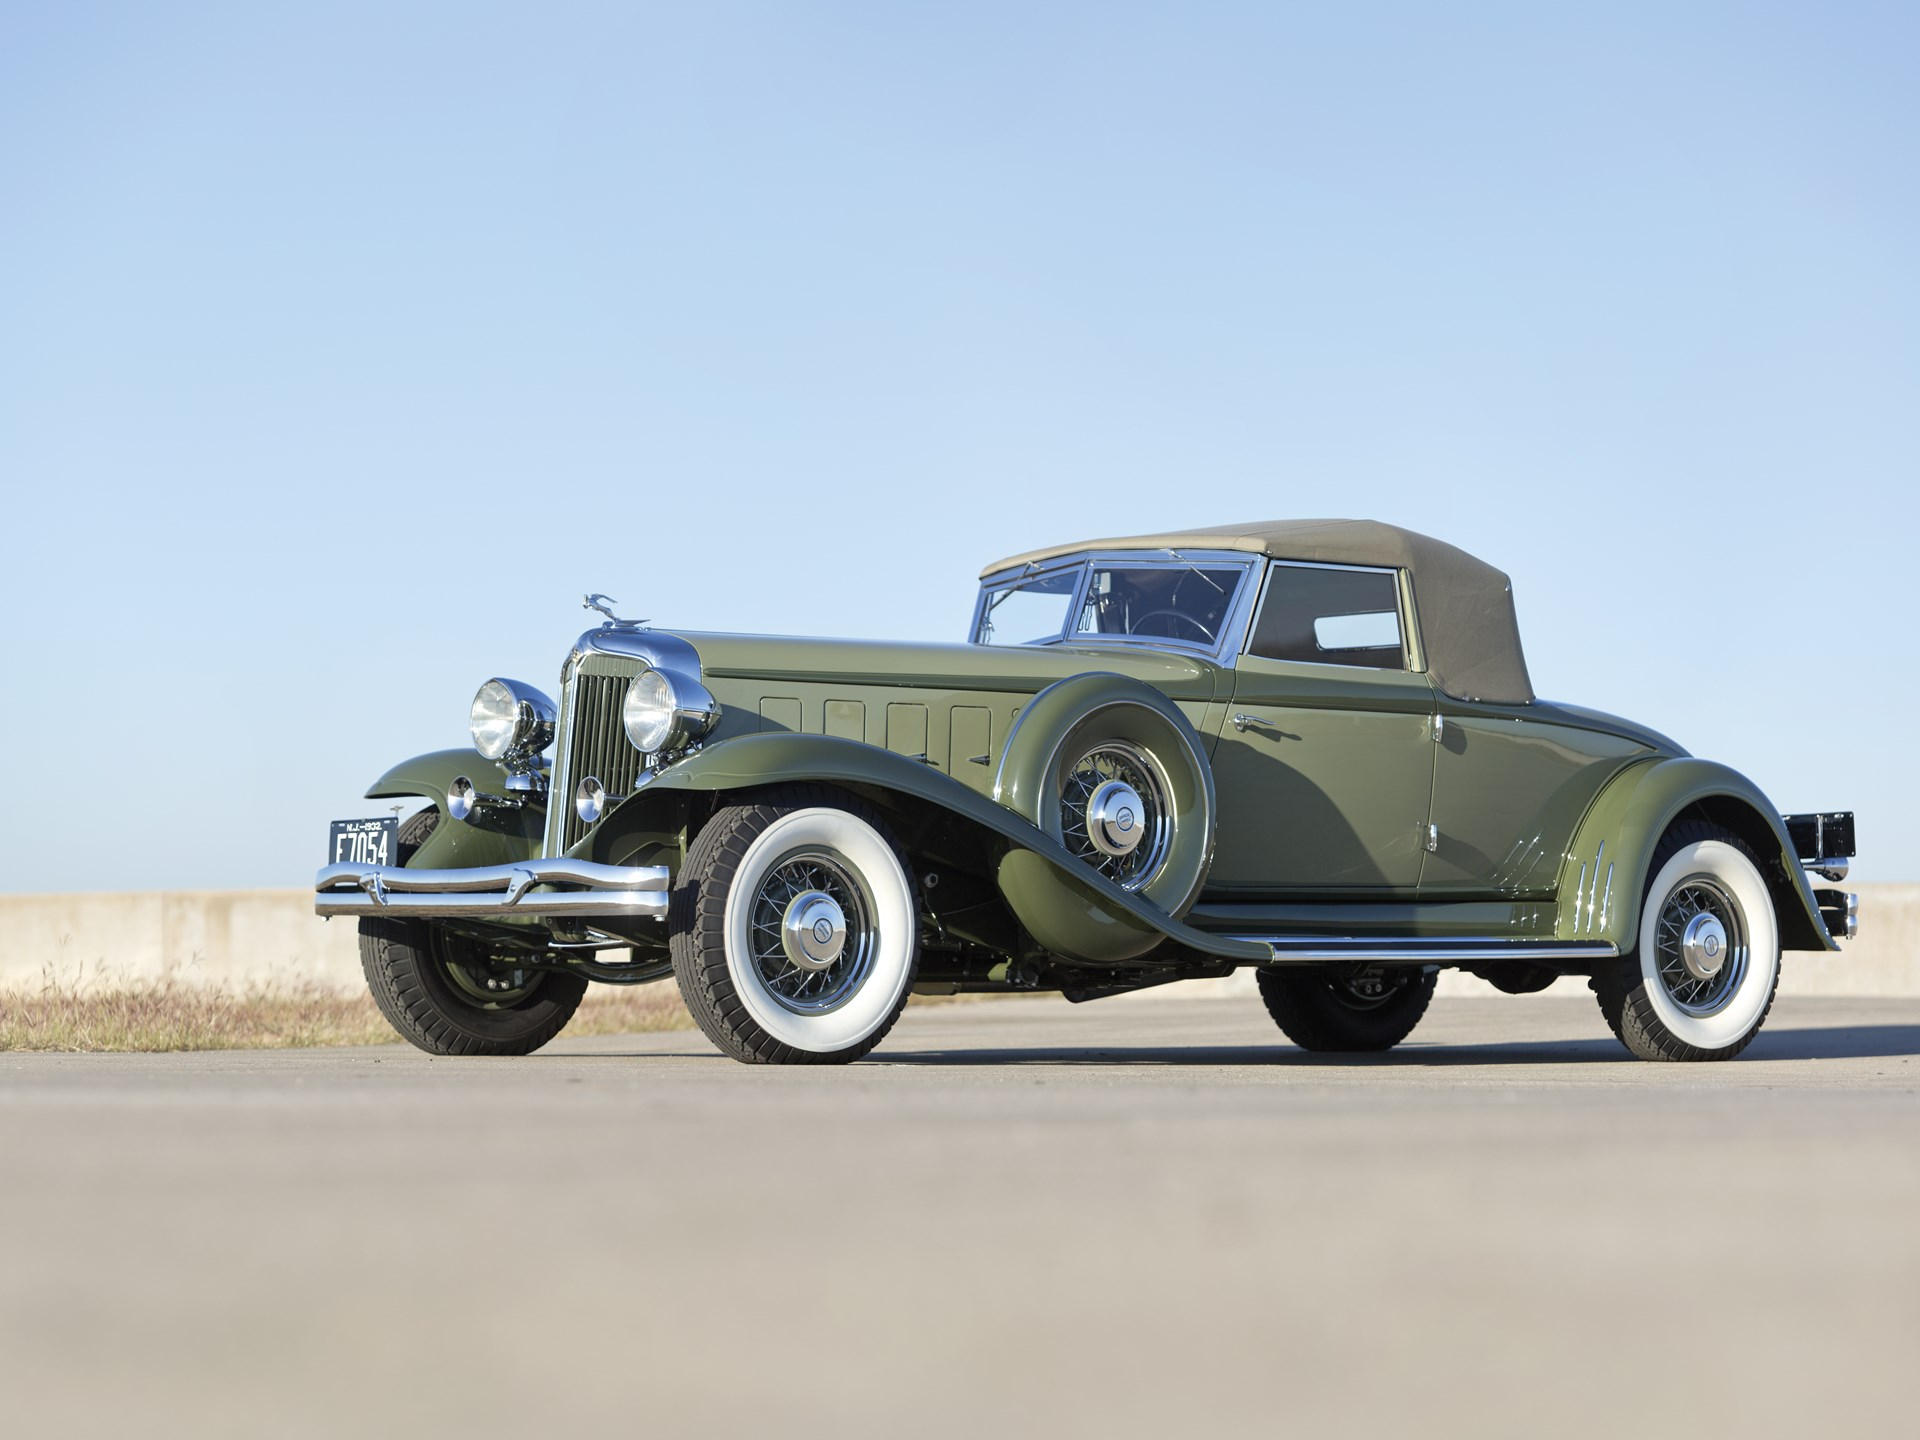 RM Sotheby's - 1932 Chrysler CL Imperial Convertible Coupe by